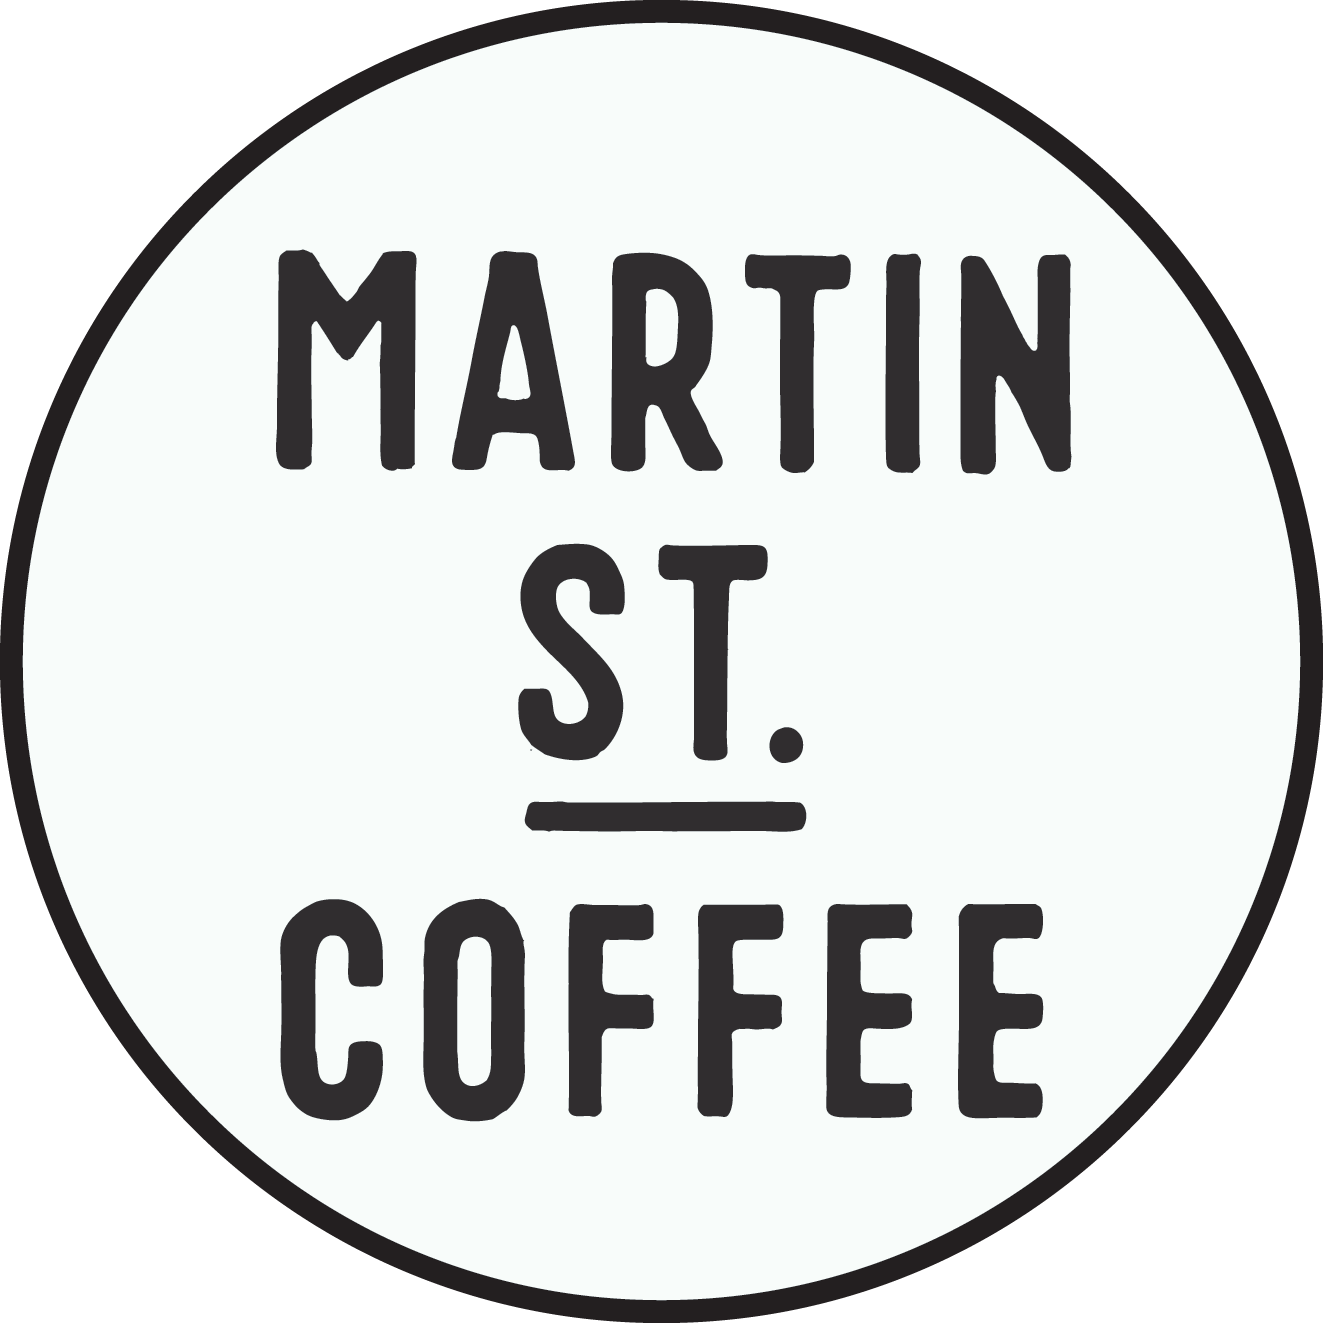 MARTIN ST COFFEE